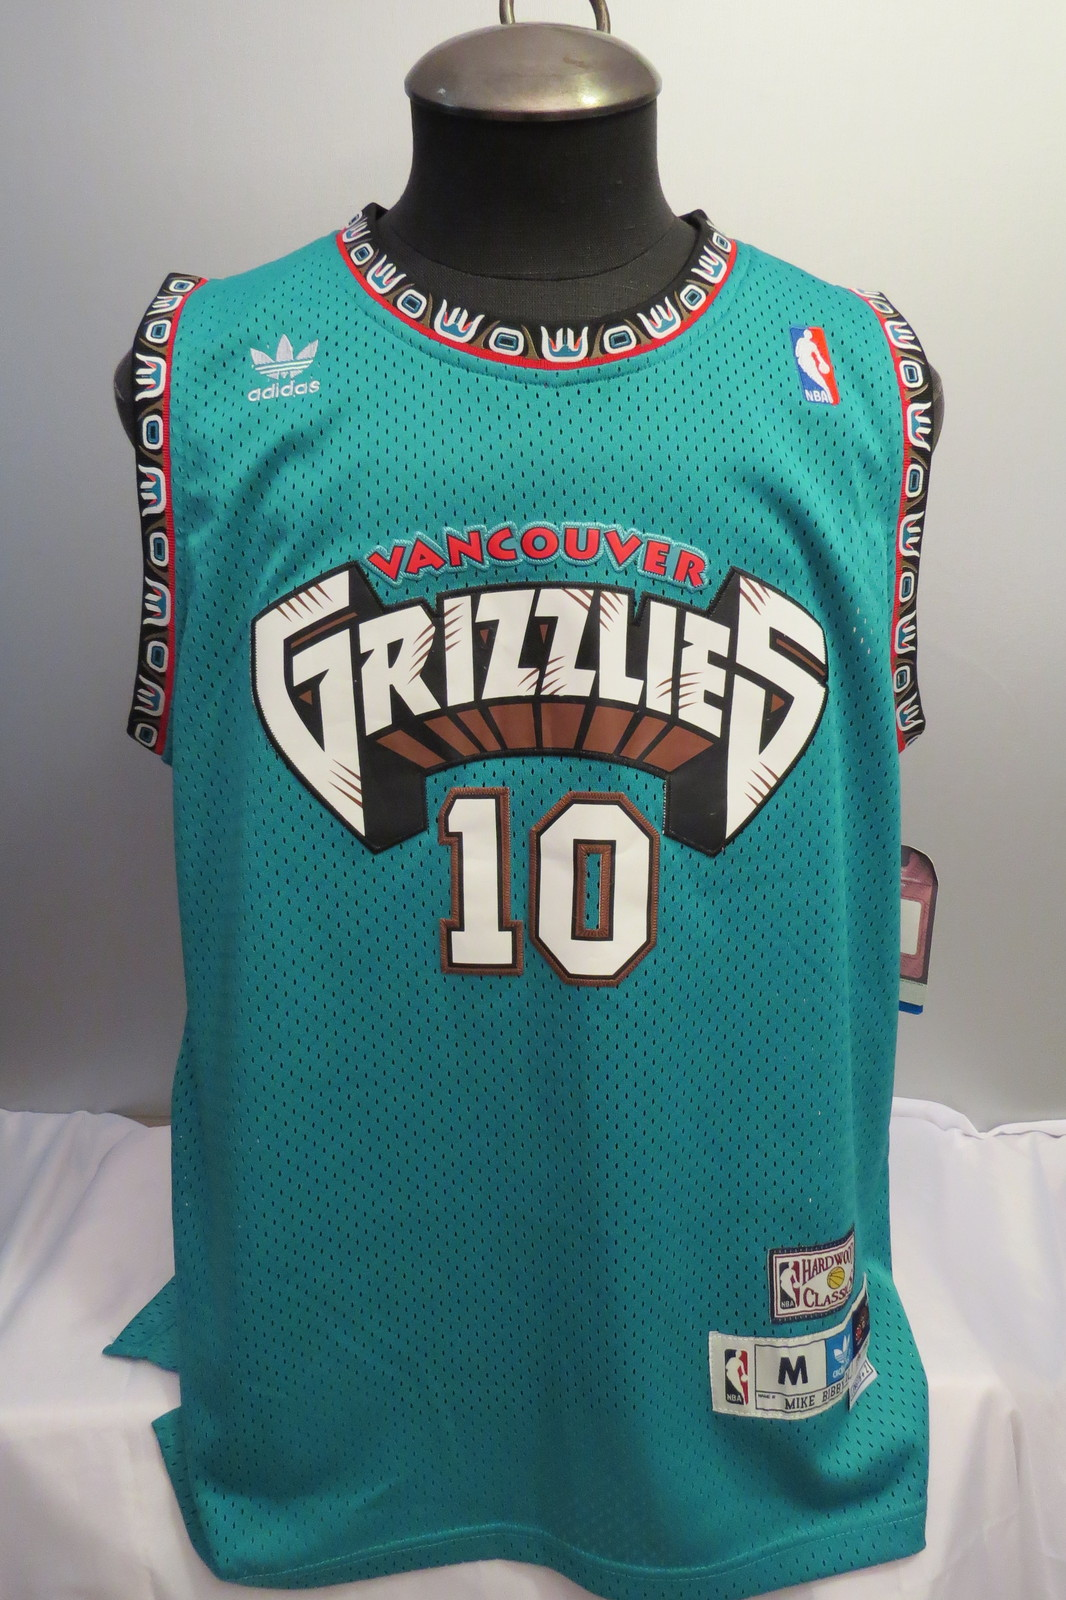 95500c75b0e Img 2354. Img 2354. Previous. Vancouver Grizzlies Jersey - Mike Bibby  10 -  Adidas Swingman - Men s ...